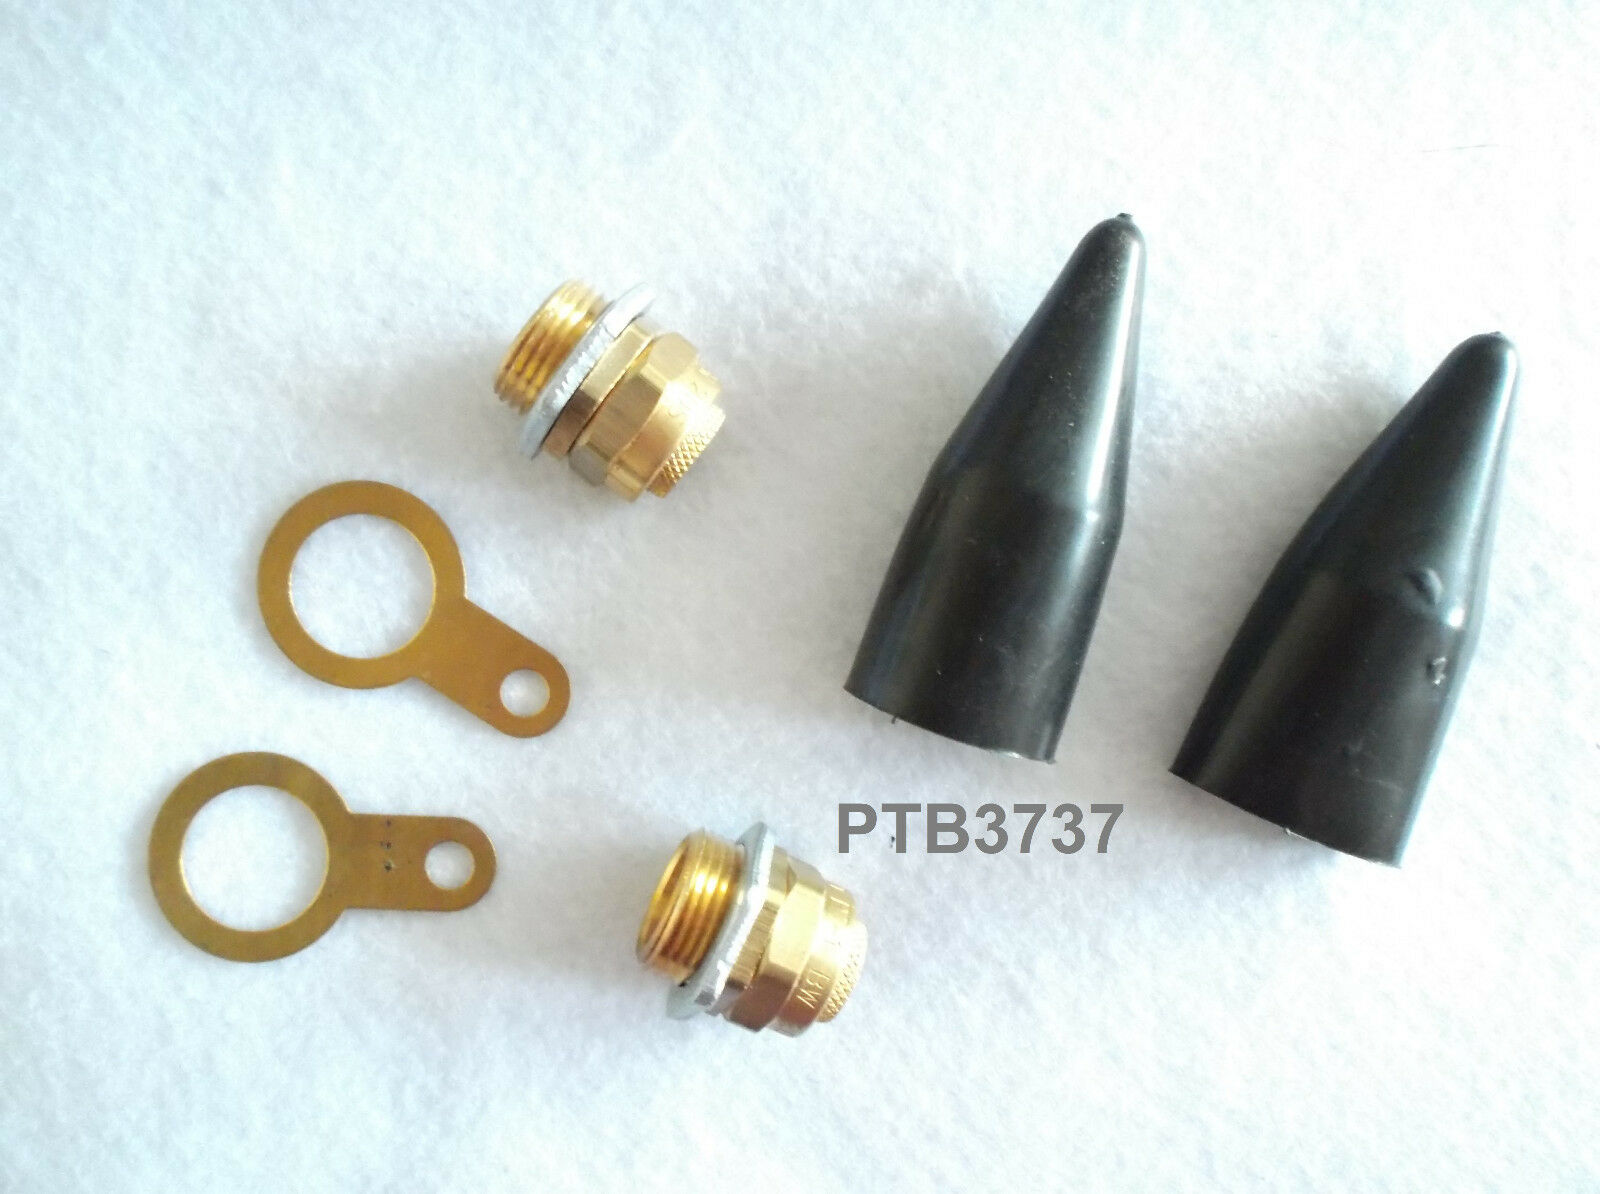 4TRADE PACK OF 2 20mm SWA BRASS GLAND KITS WITH SHROUD EARTH TAG /& LOCKING NUT